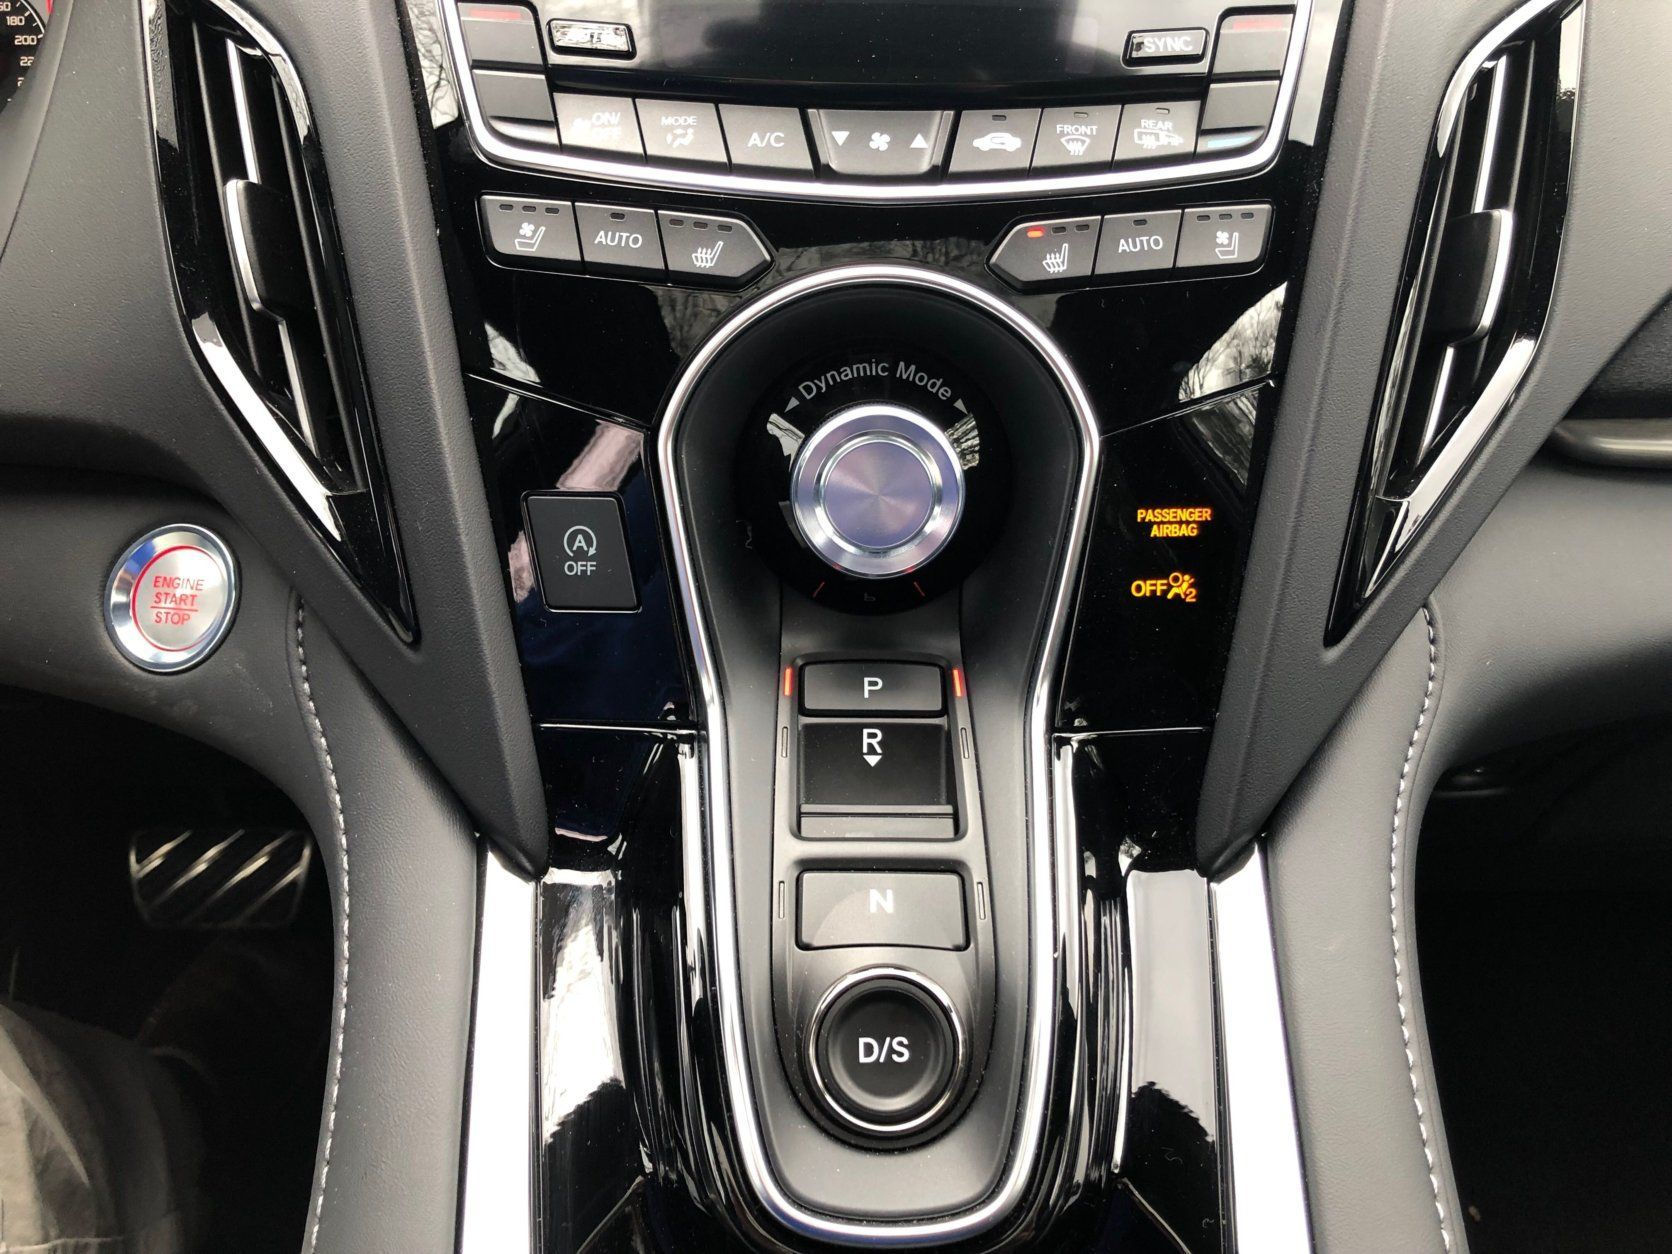 View of the center console of the Acura RDX